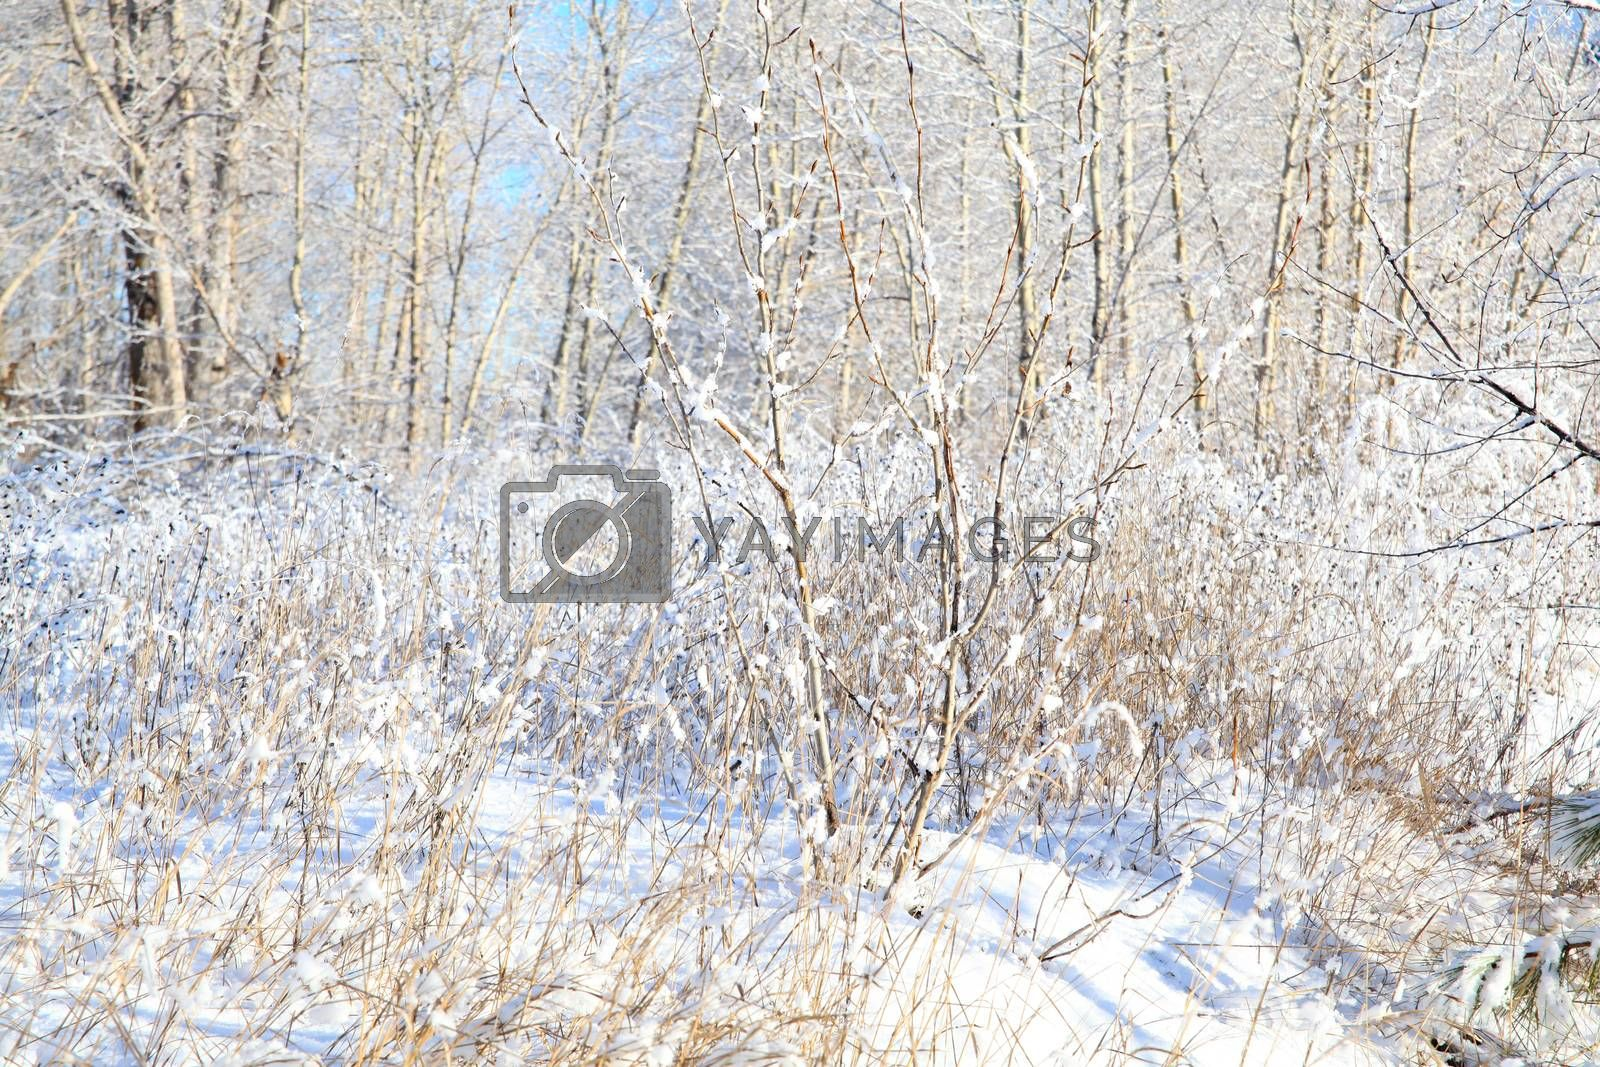 Snow covered trees and twigs on a sunny day